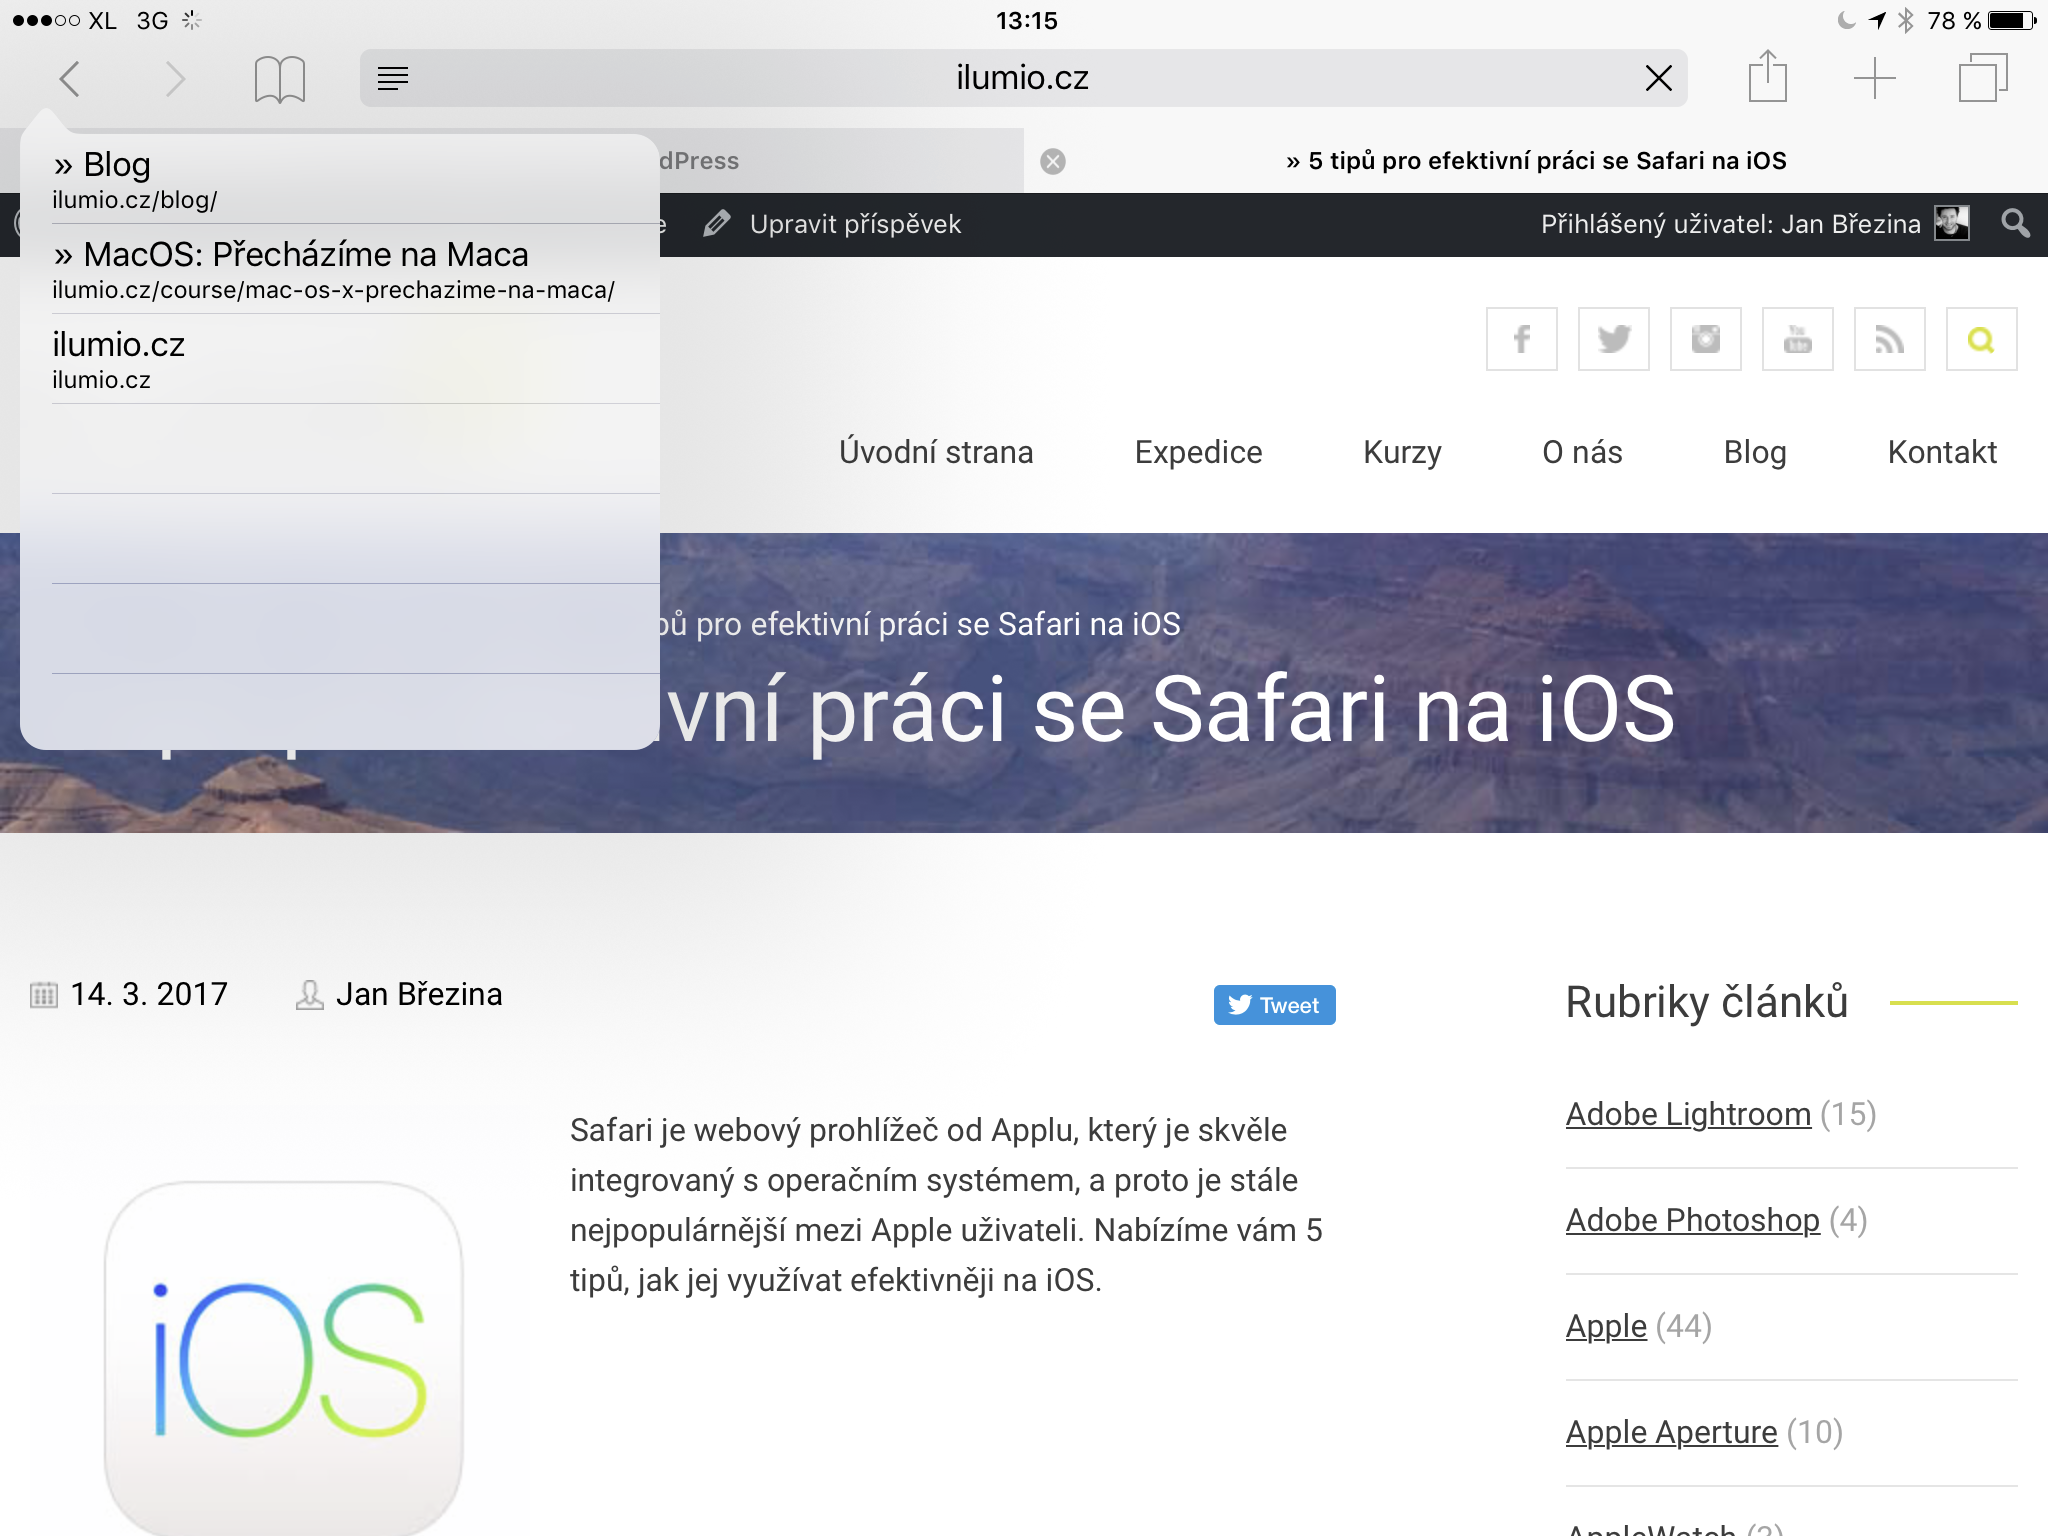 Safari na iOS